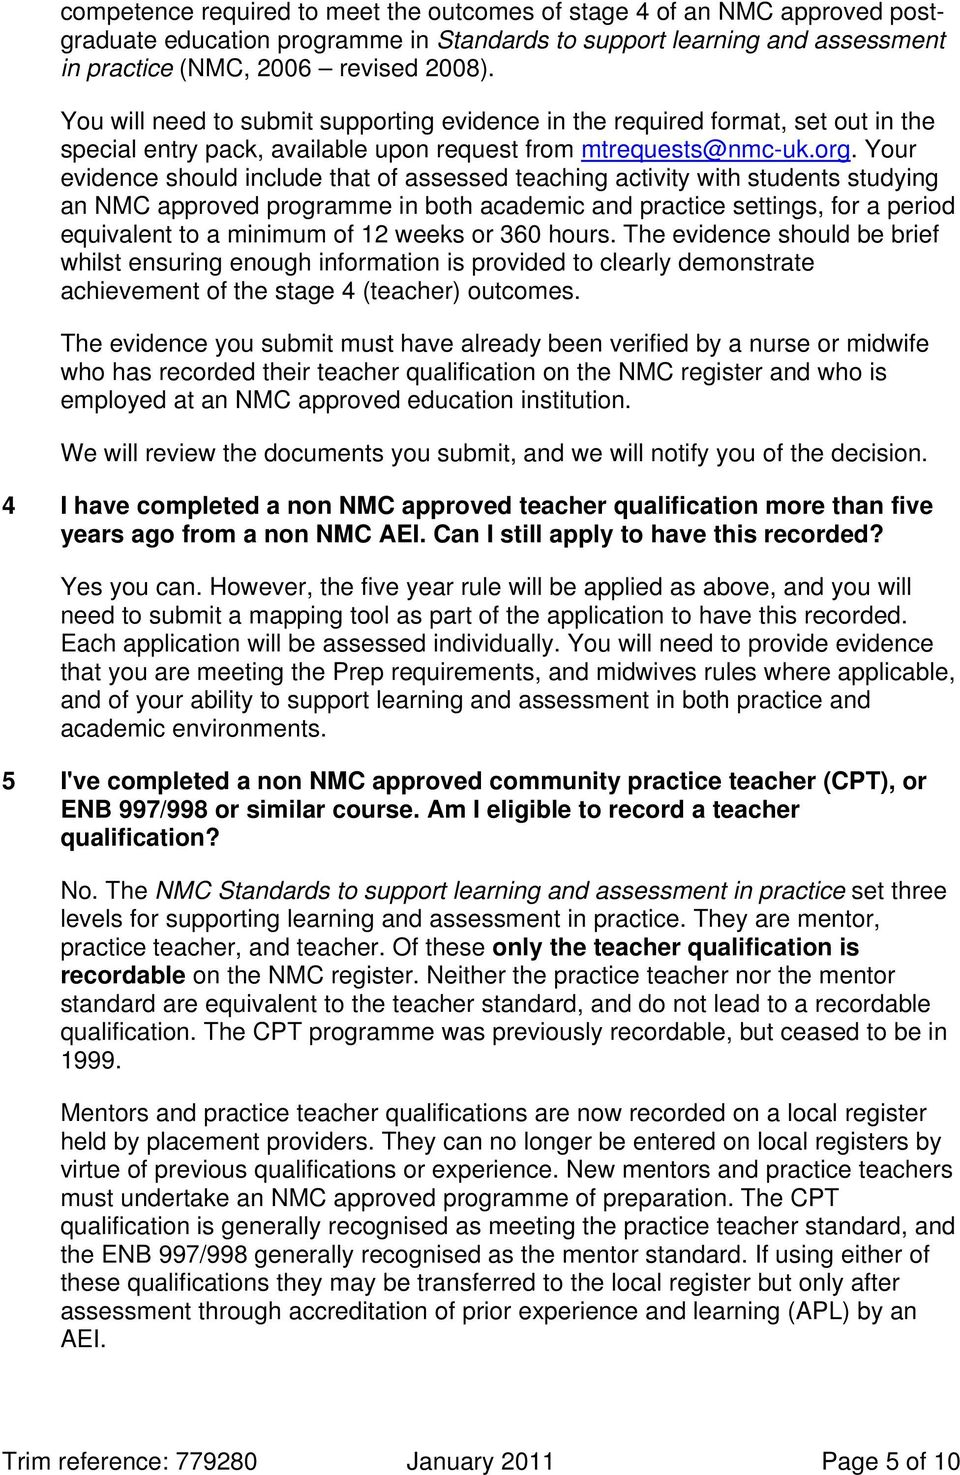 standards to support learning and assessment in practice